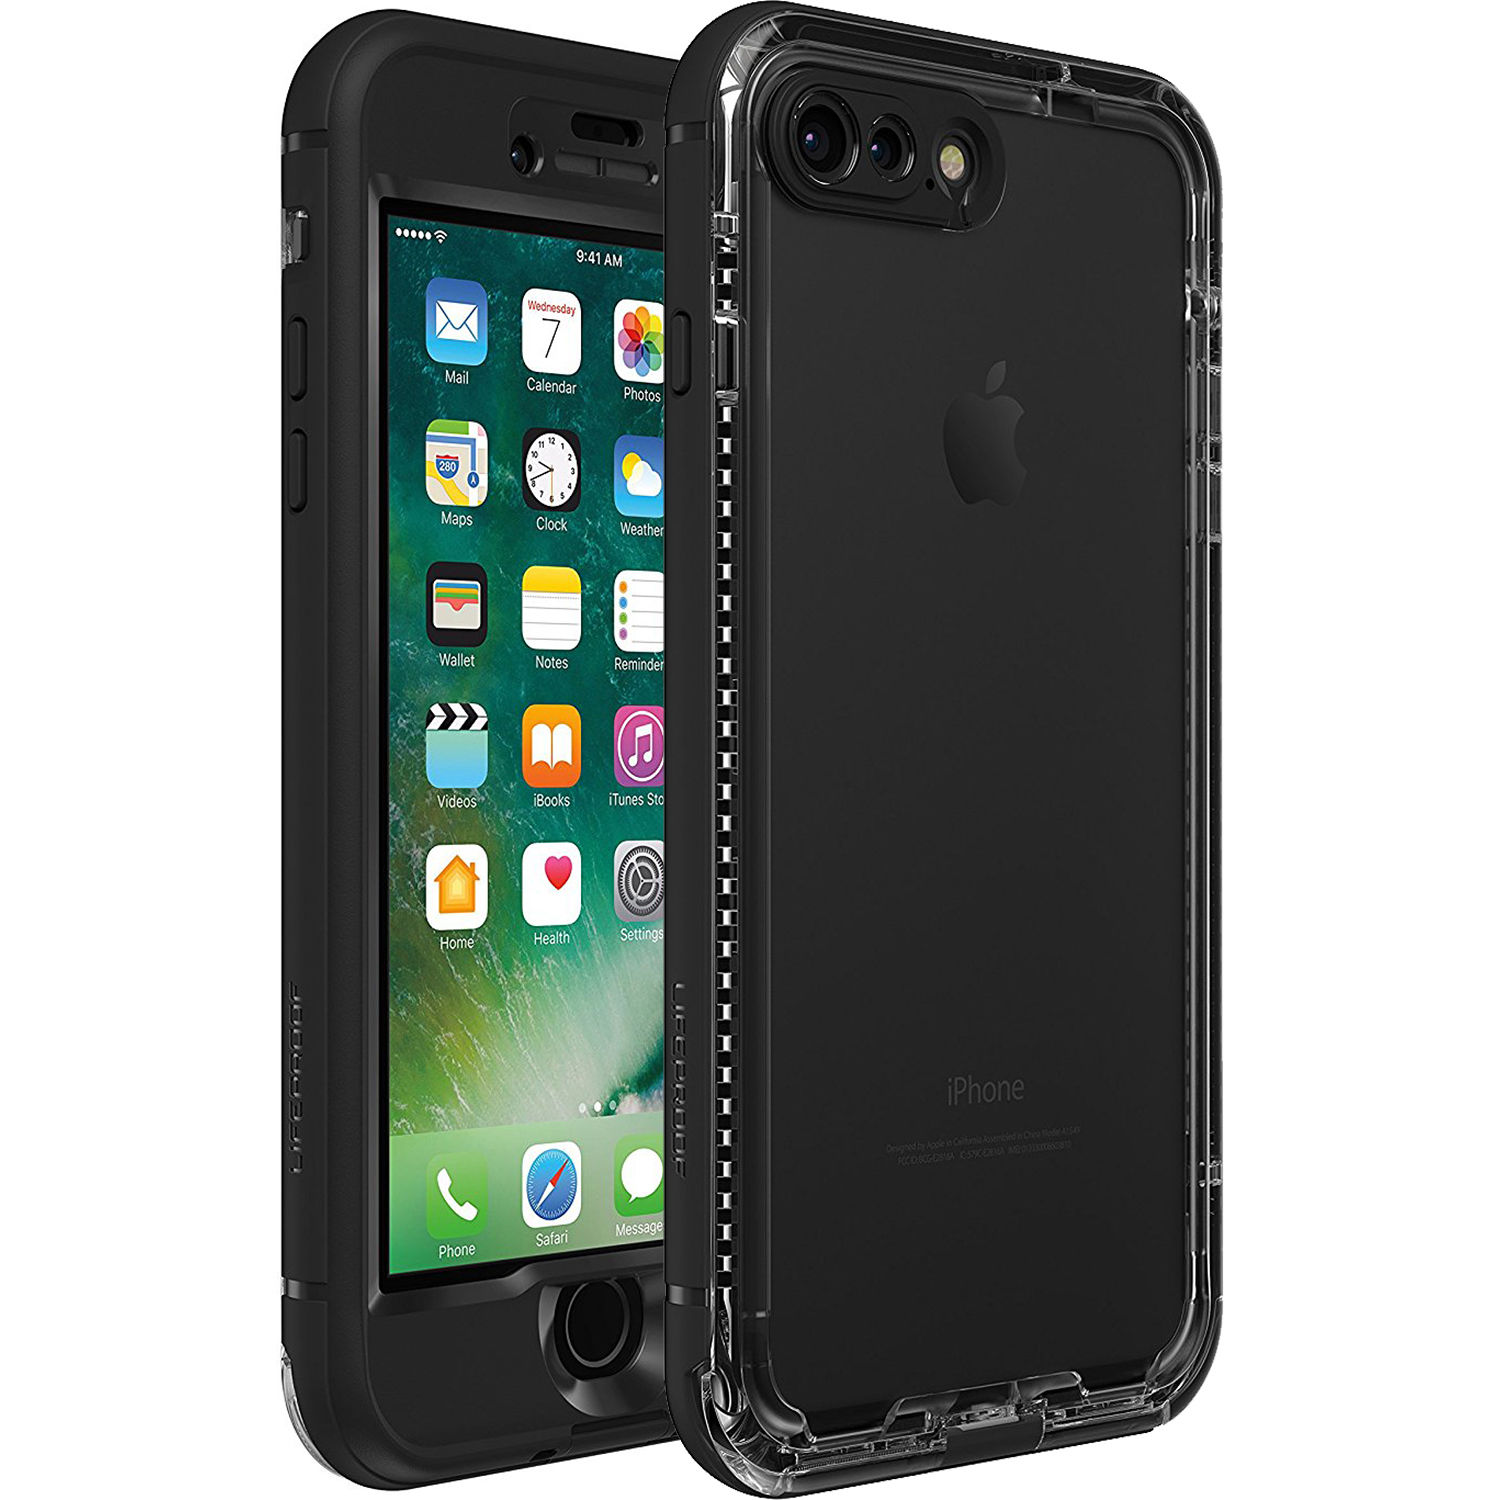 LifeProof nüüd Case for iPhone 7 Plus (Black) 77-54001 77f77cac7f5f